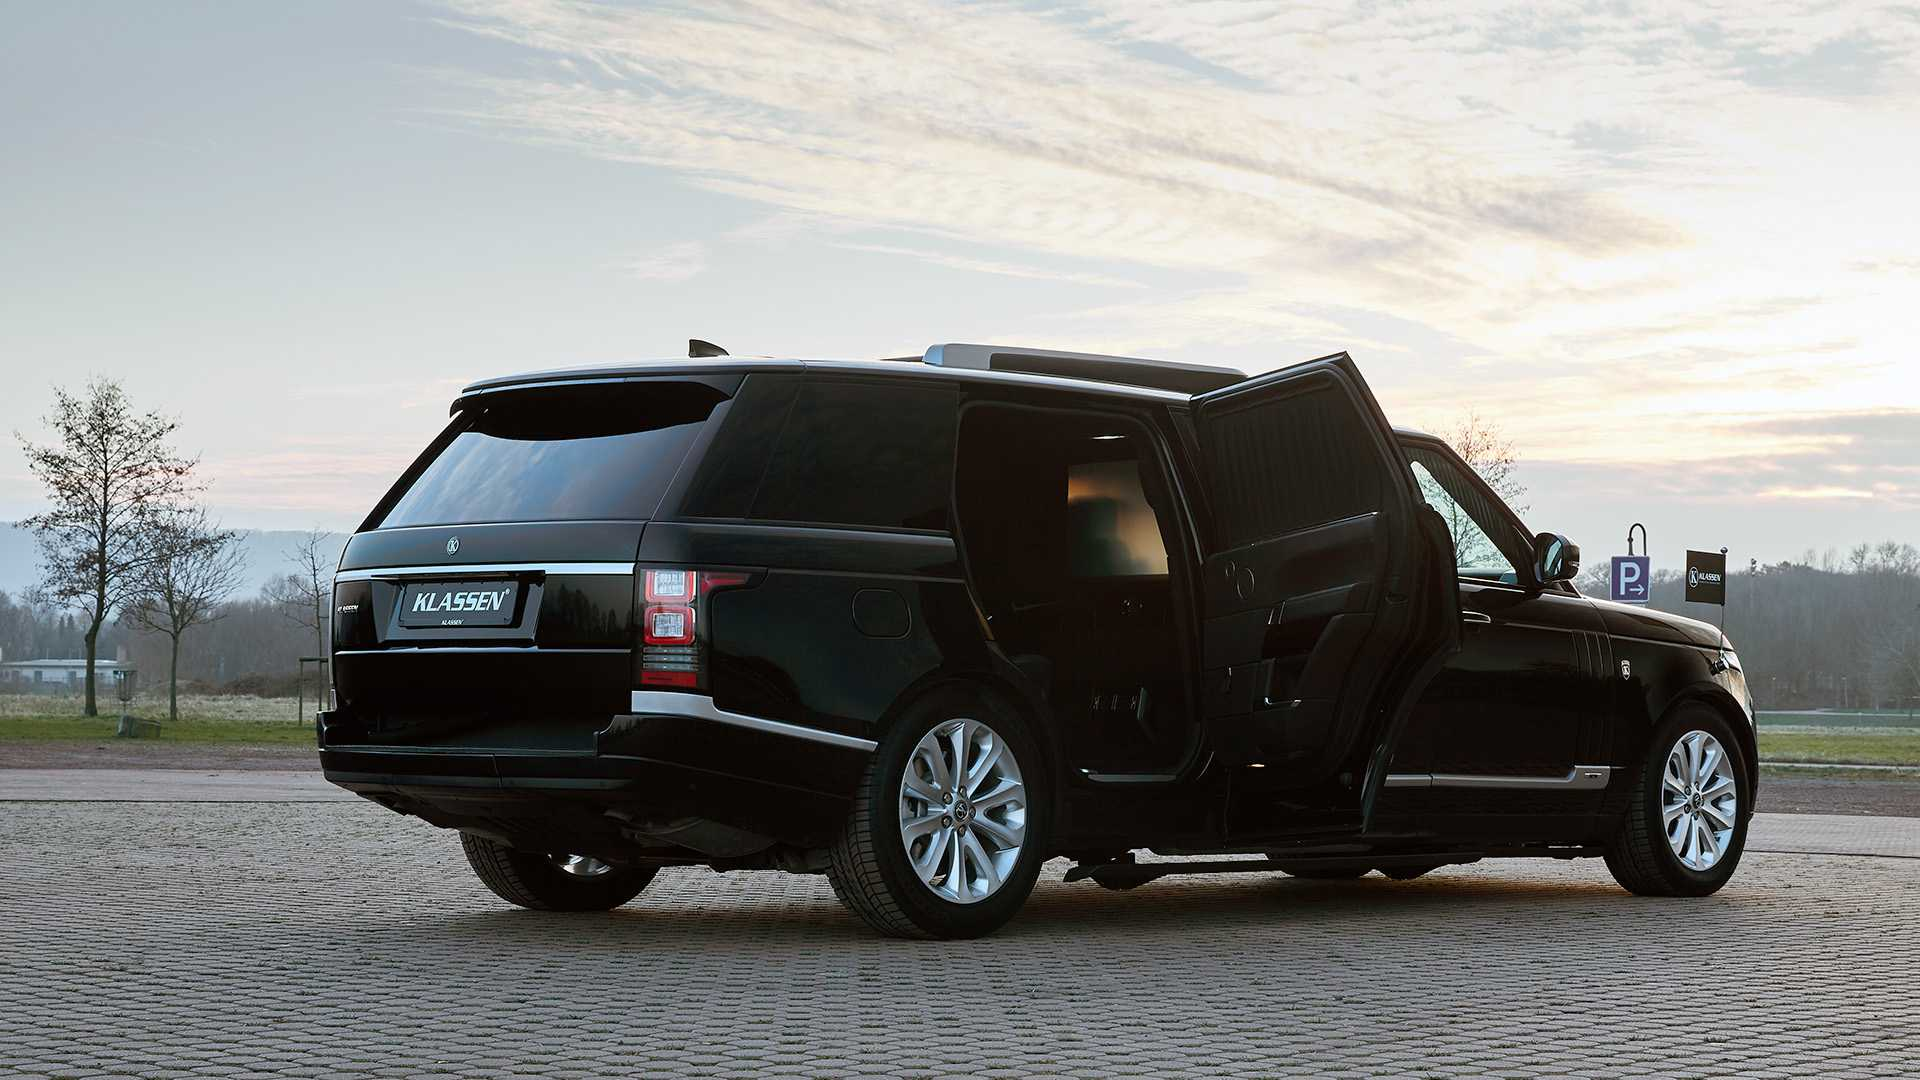 klassen-stretched-land-rover-range-rover-autobiography-6